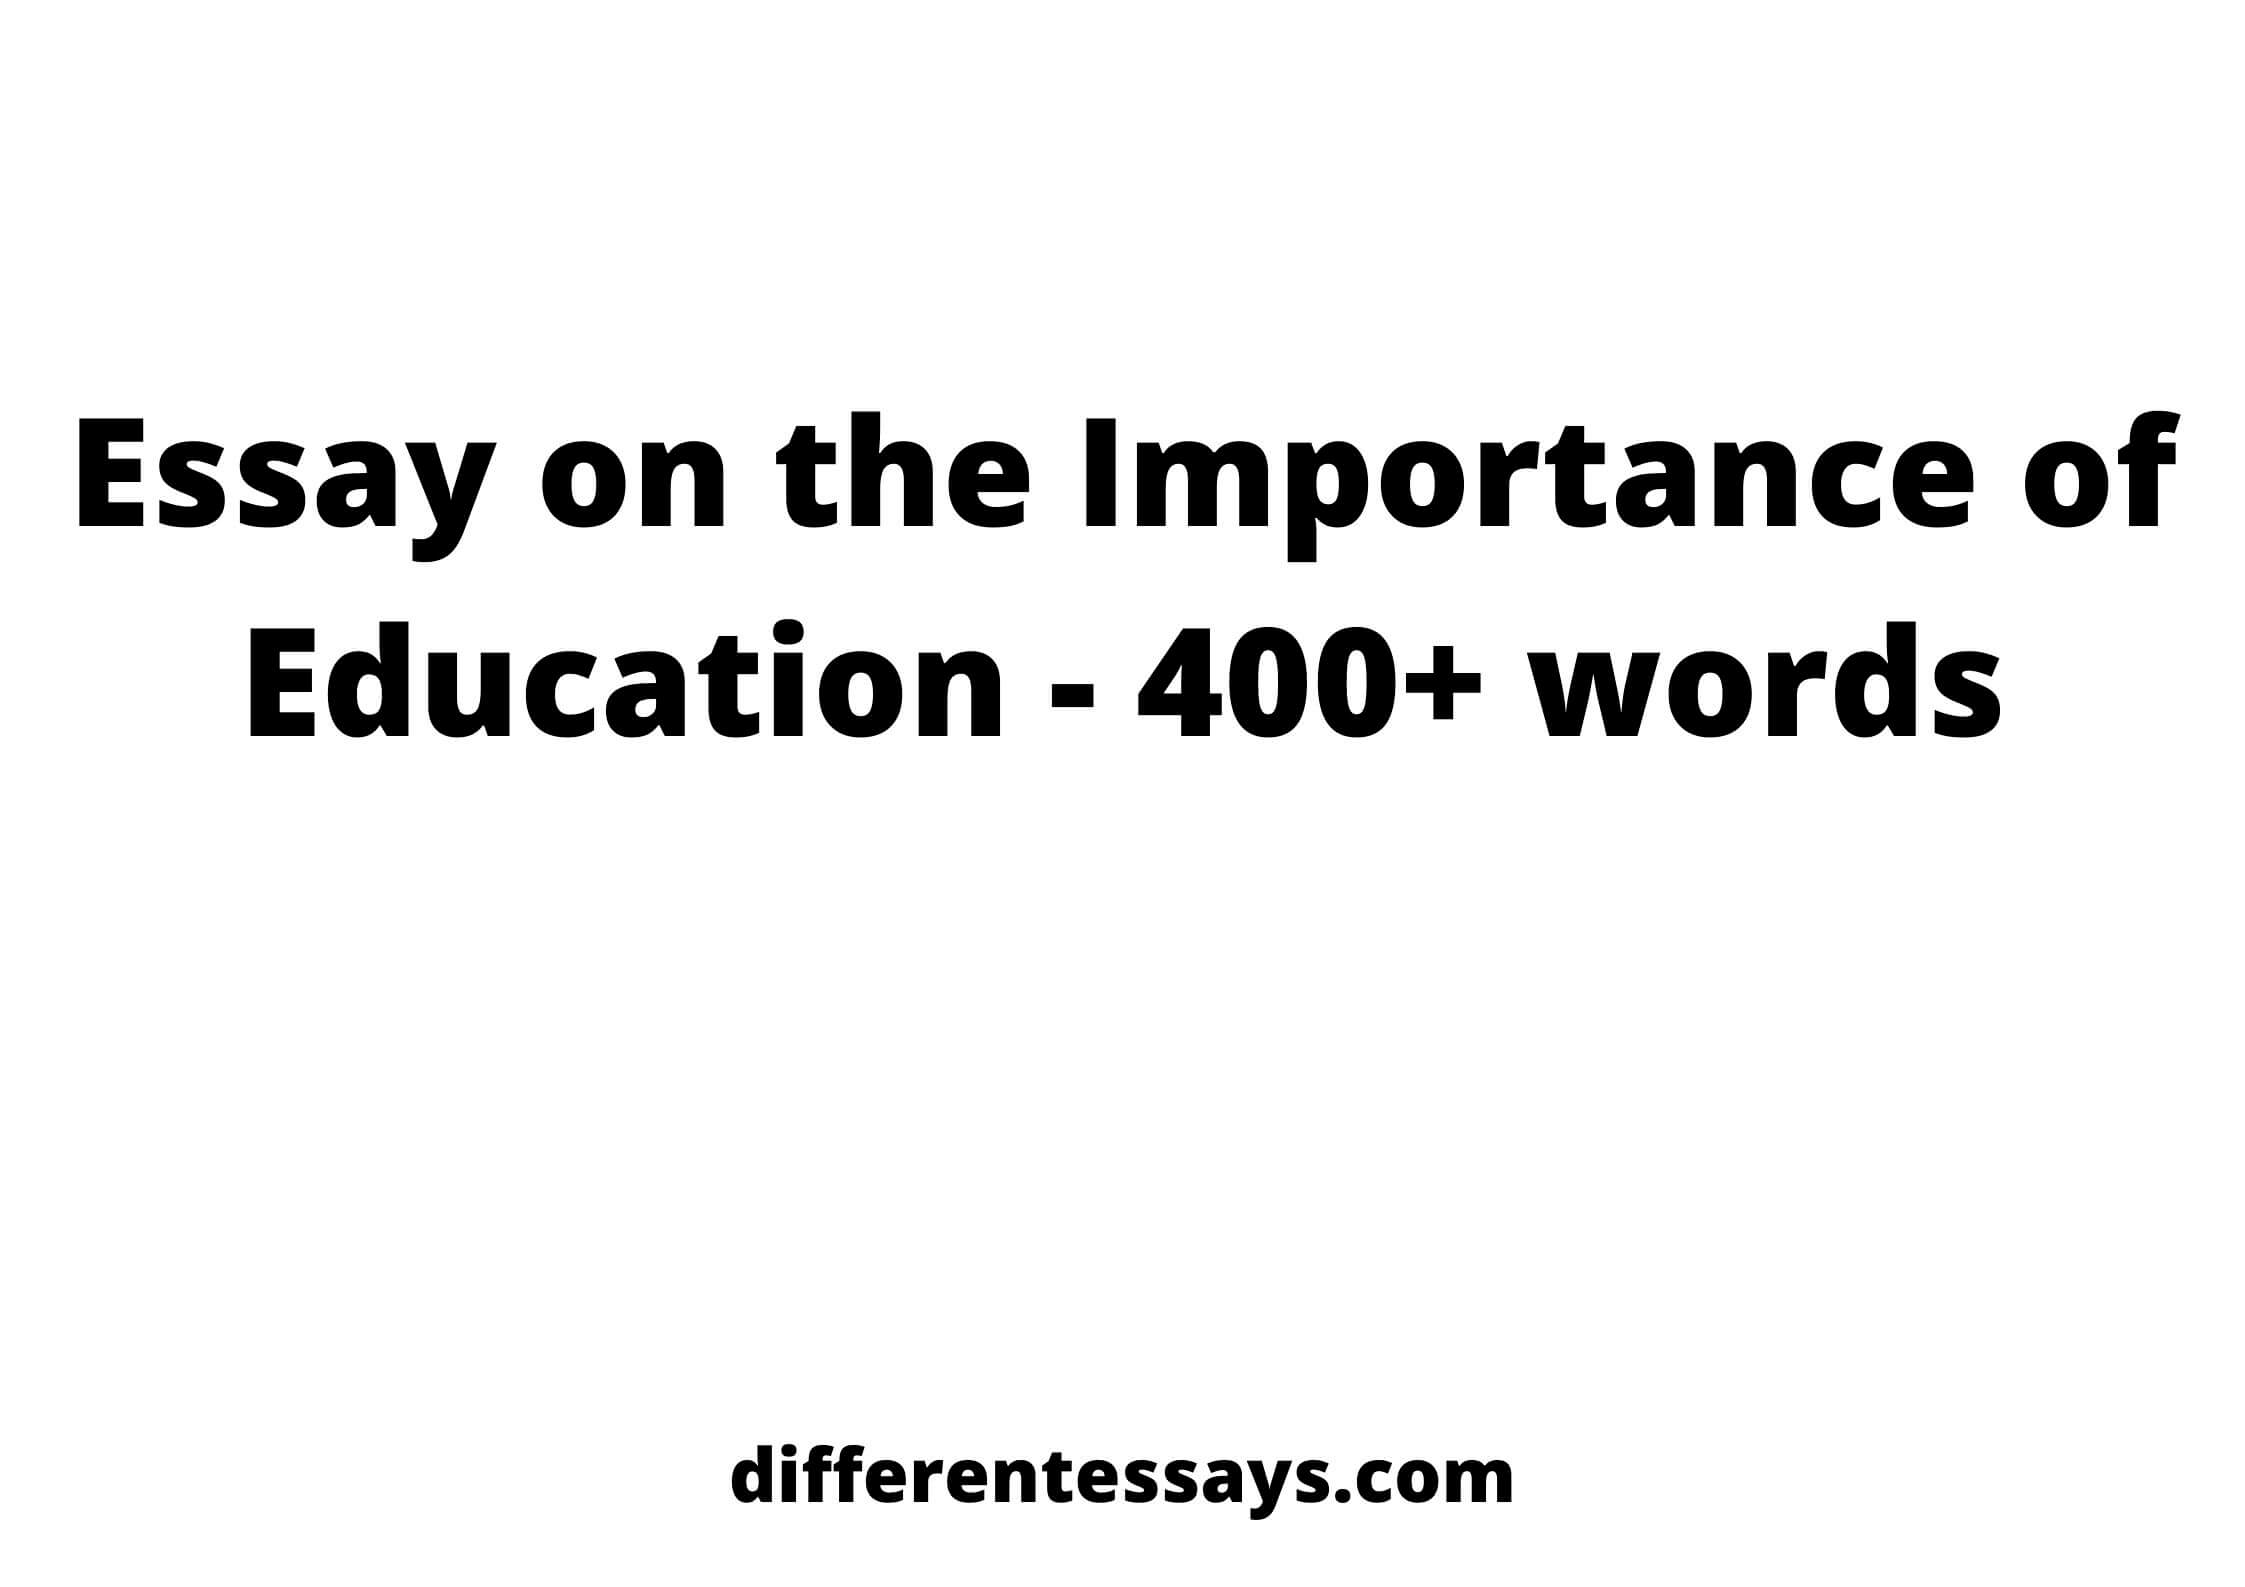 Essay on the Importance of Education - 400+ words